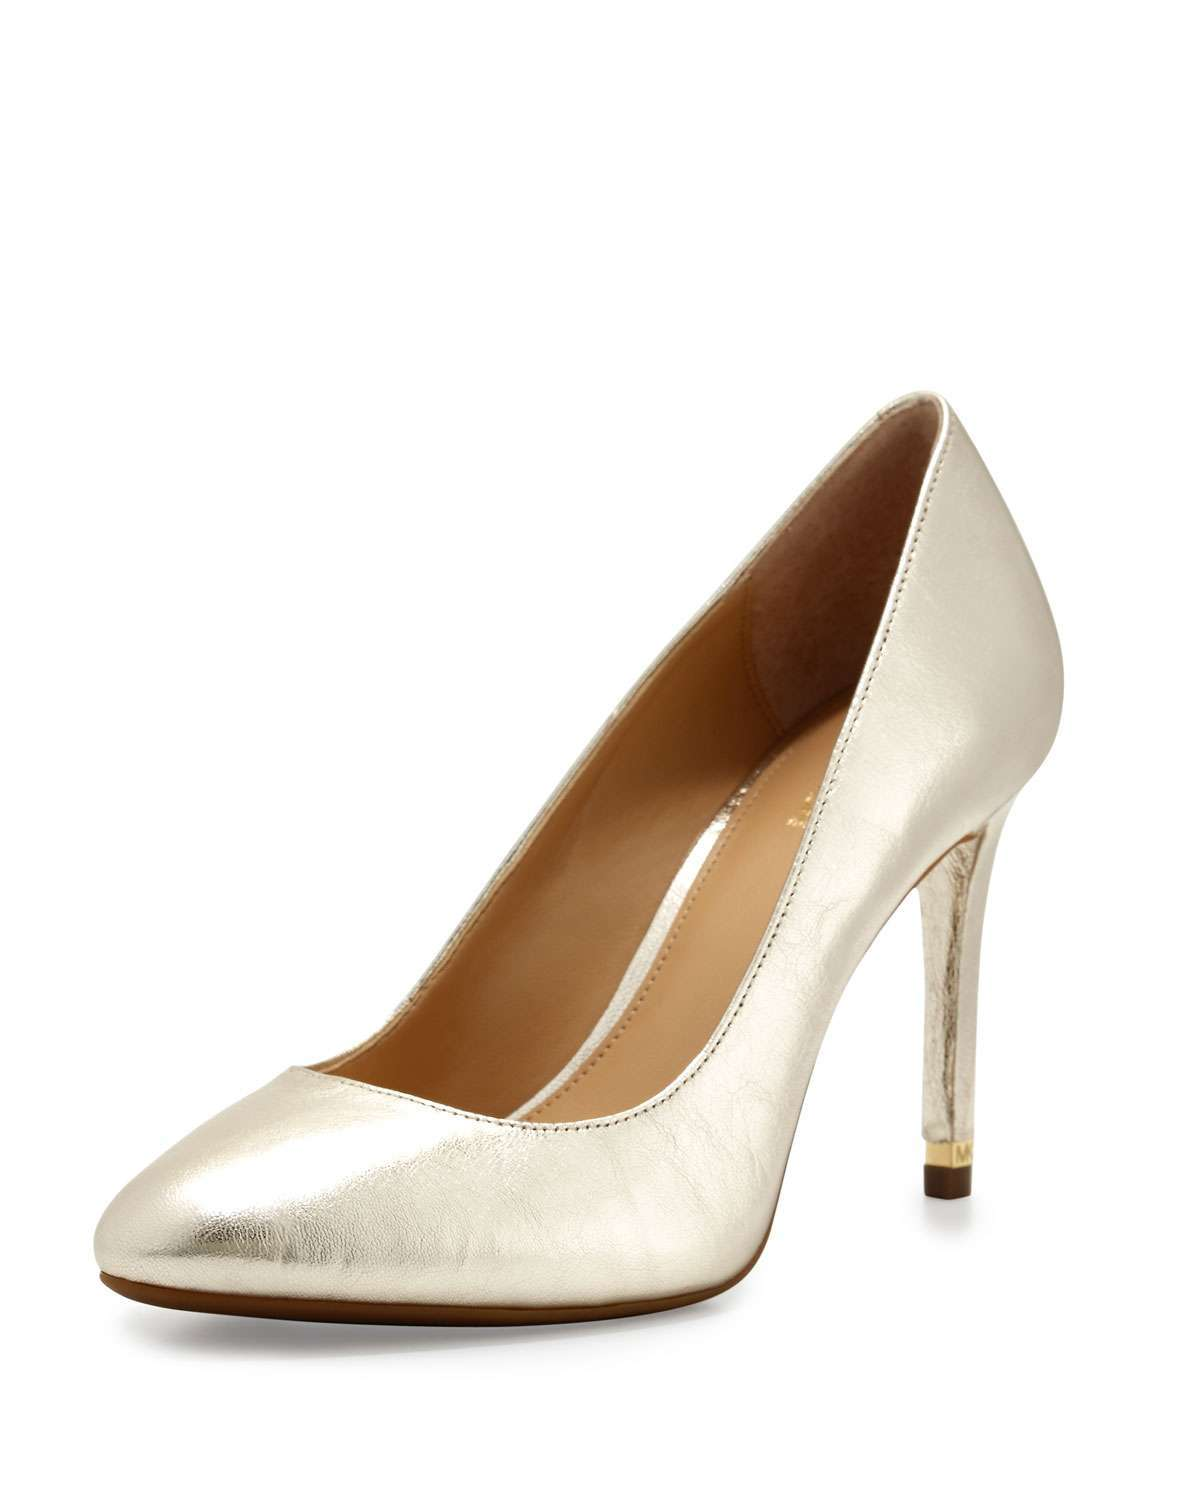 Pumps dorate Michael Kors